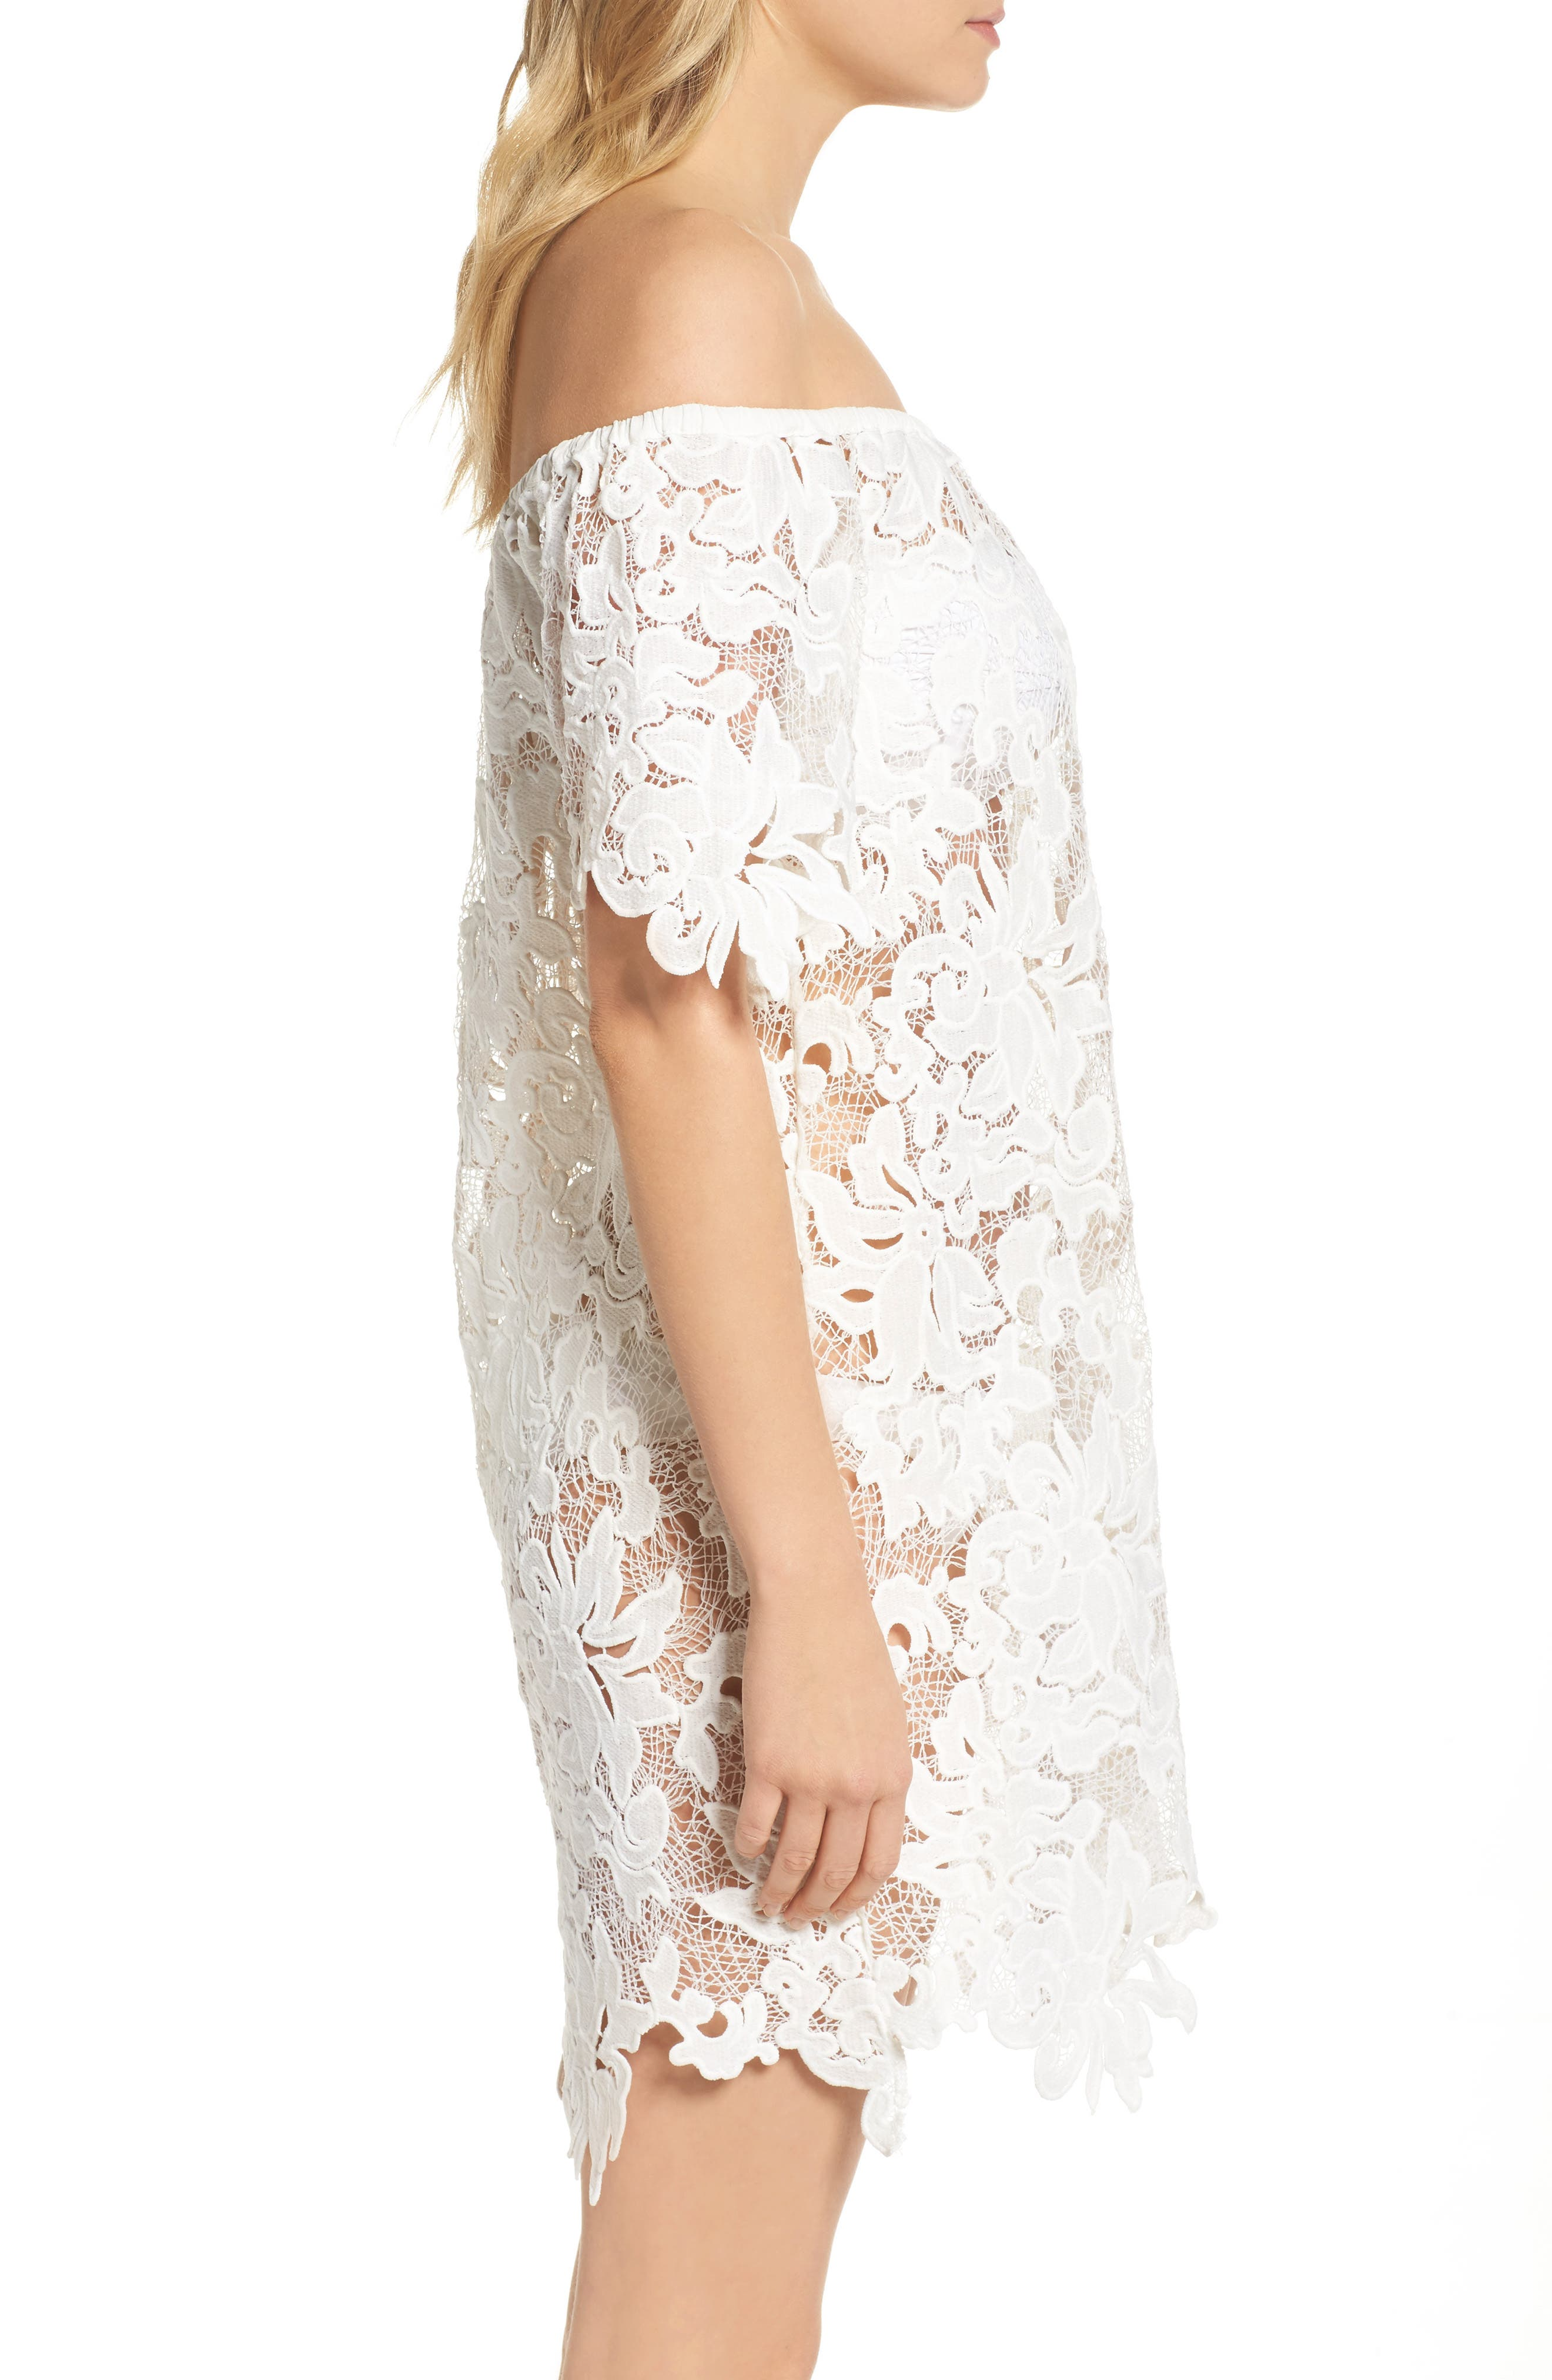 Ode Rosette Lace Cover-Up Dress,                             Alternate thumbnail 3, color,                             White